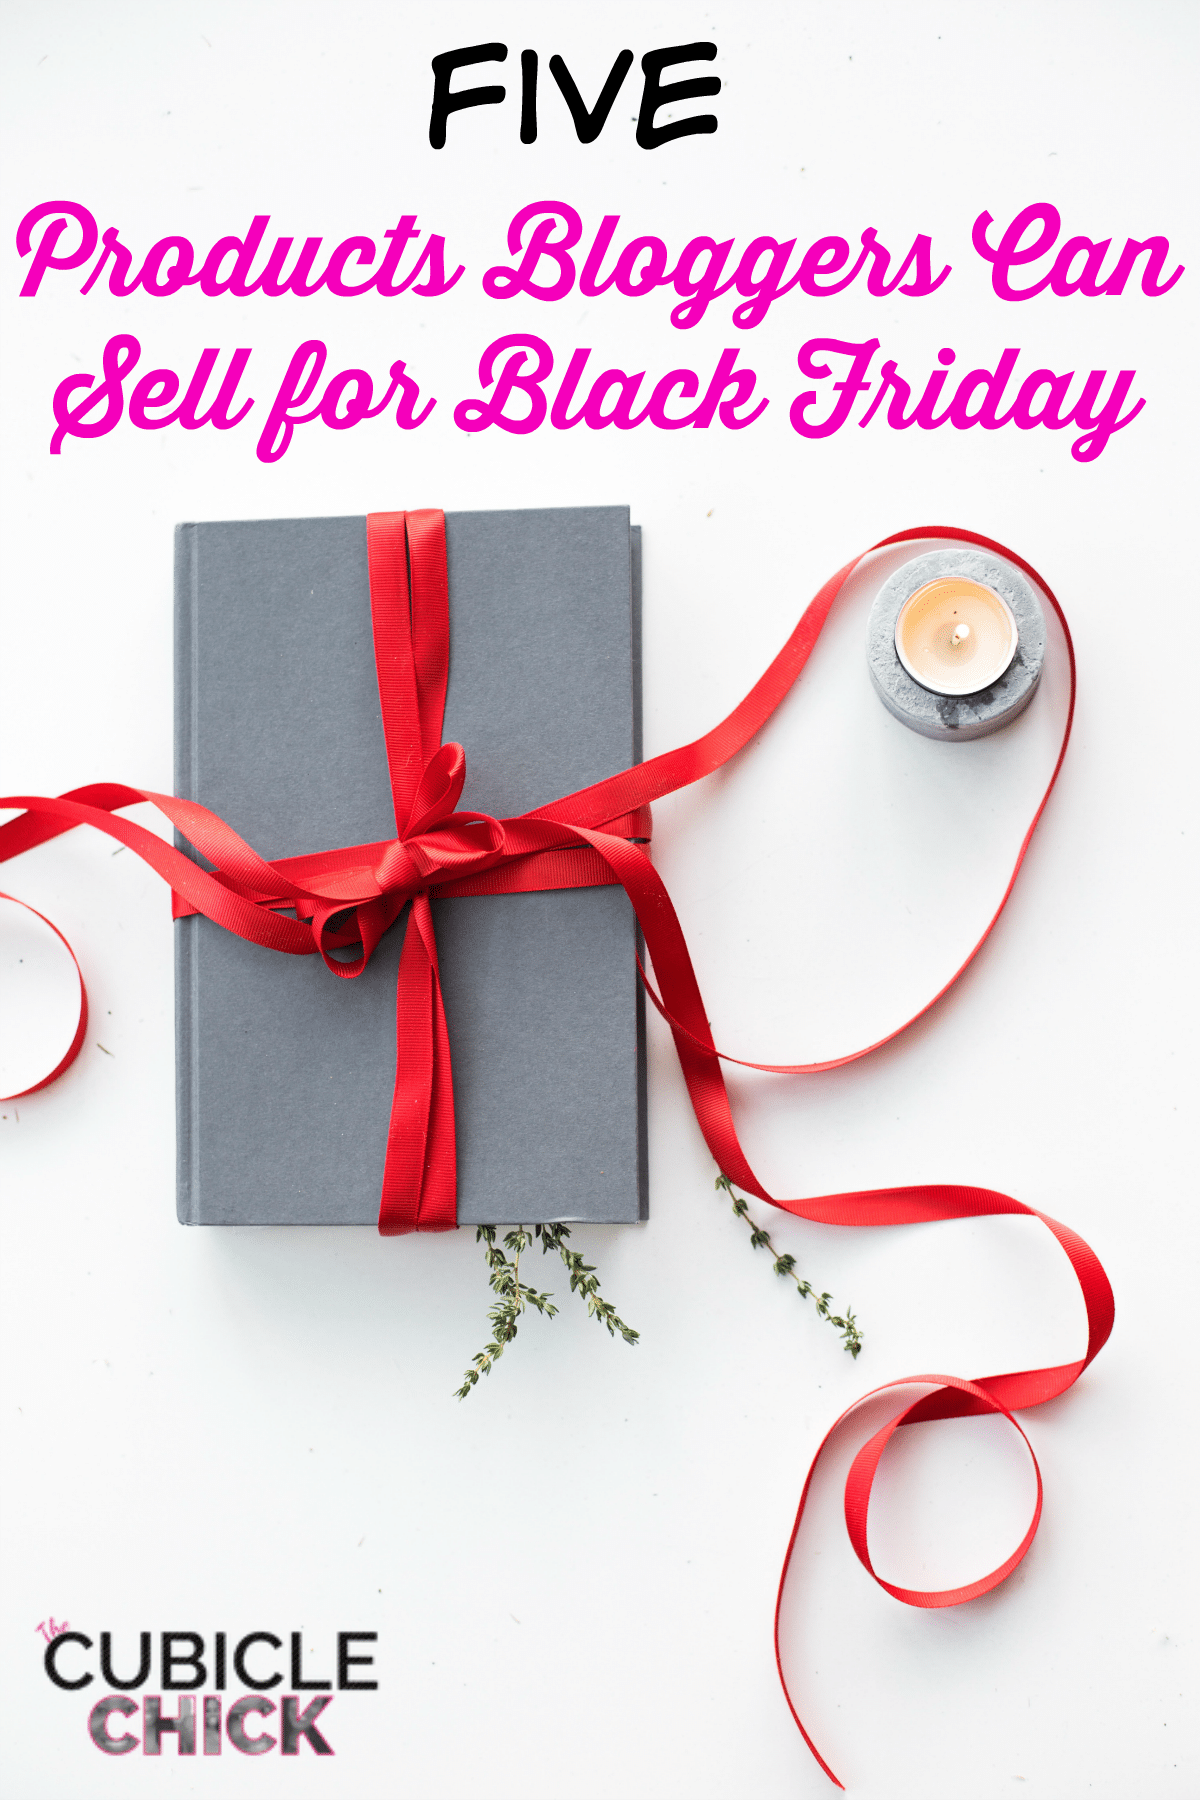 If you are a blogger and don't have anything to sell for Black Friday, what are you waiting for? Here's five quick products that you can create ASAP.